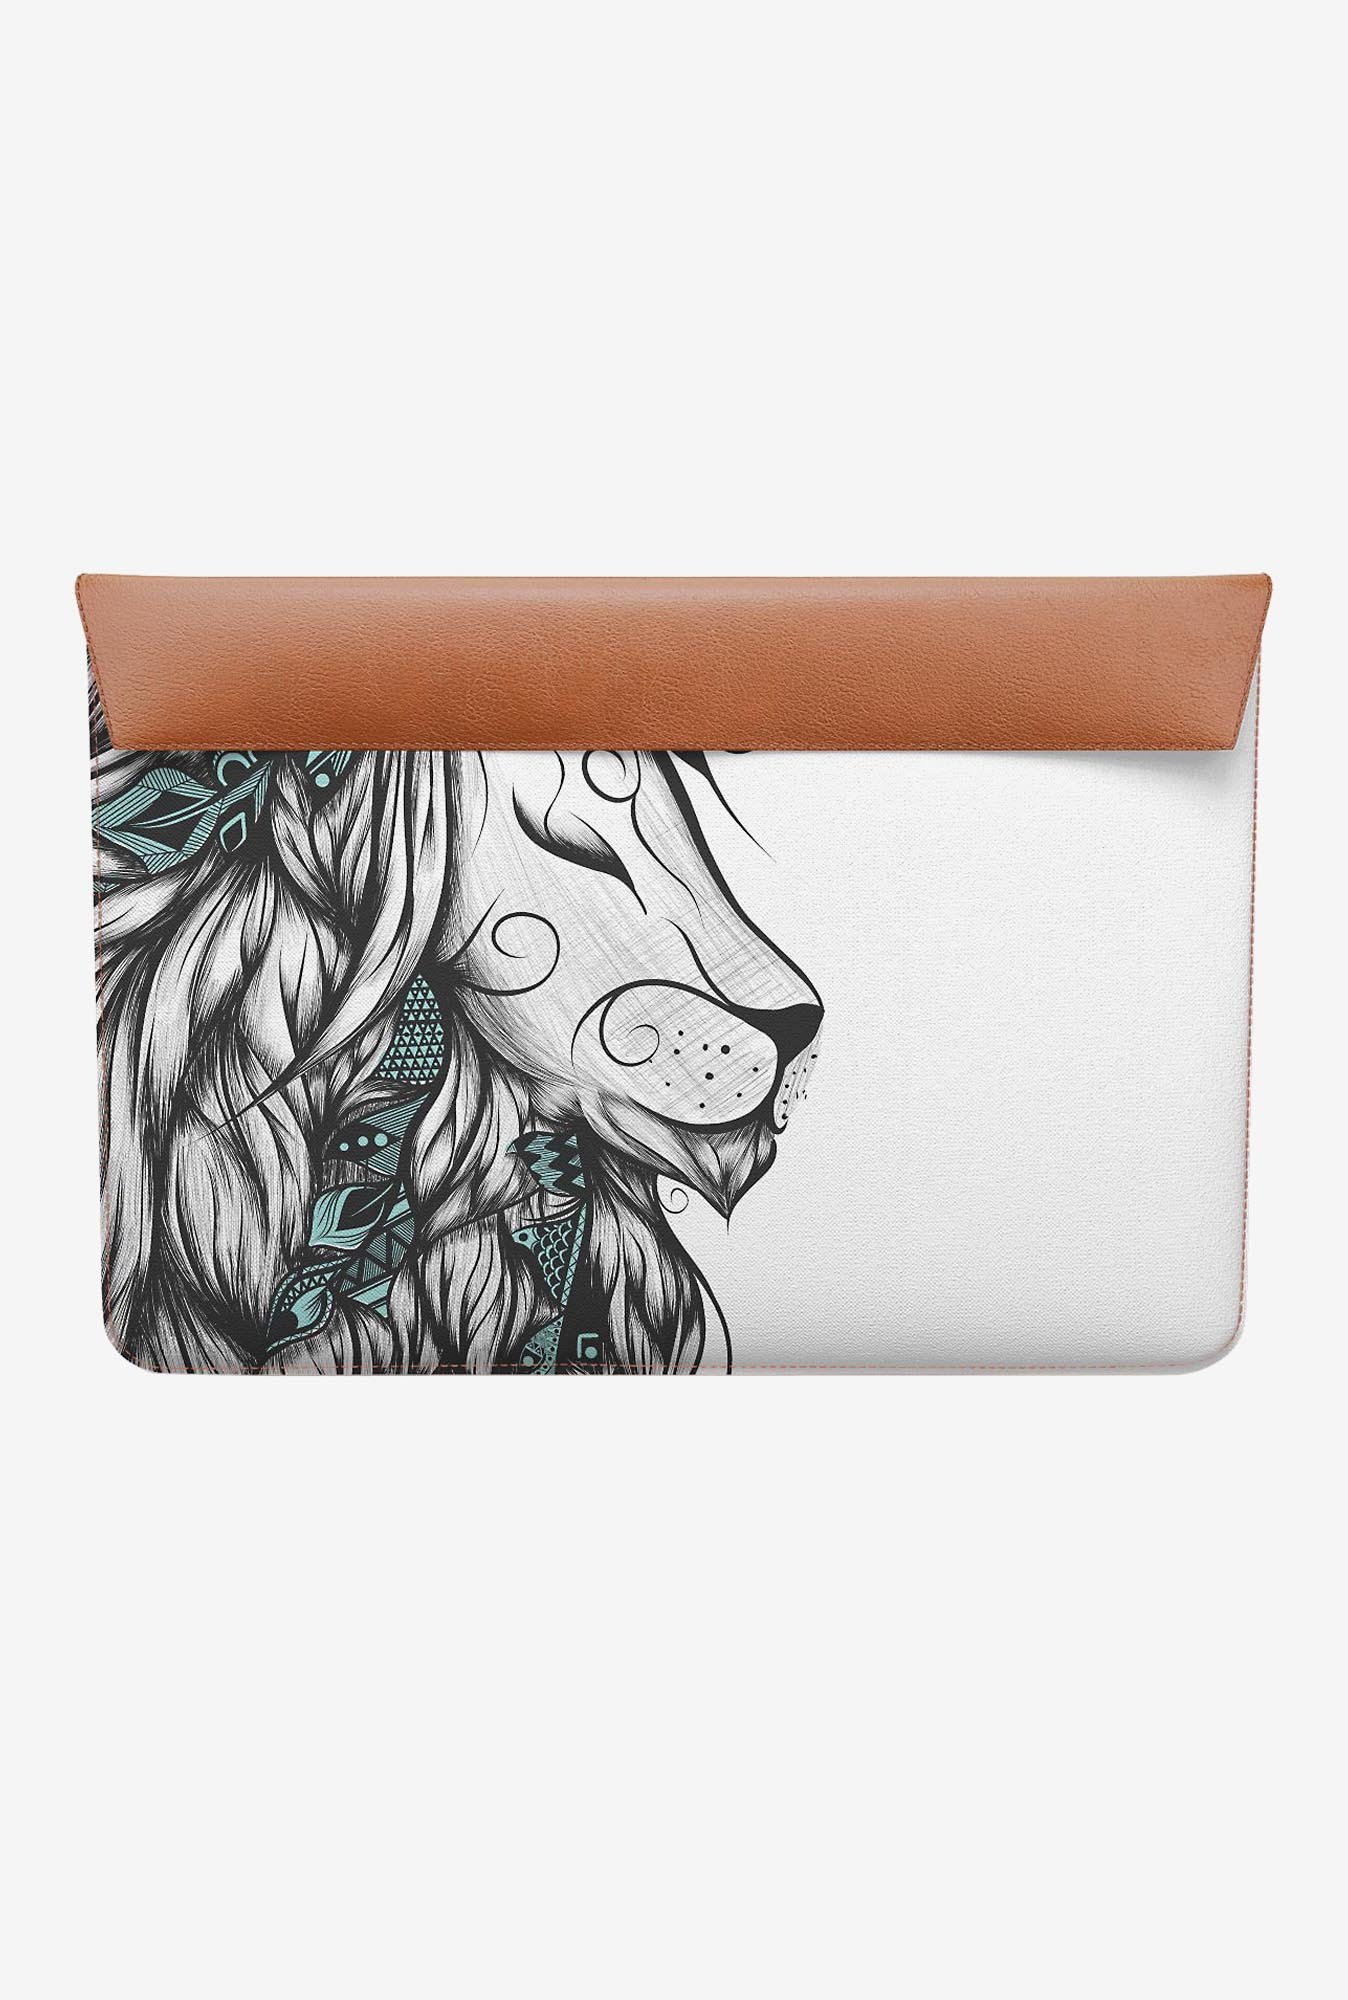 DailyObjects Poetic Lion MacBook Air 13 Envelope Sleeve